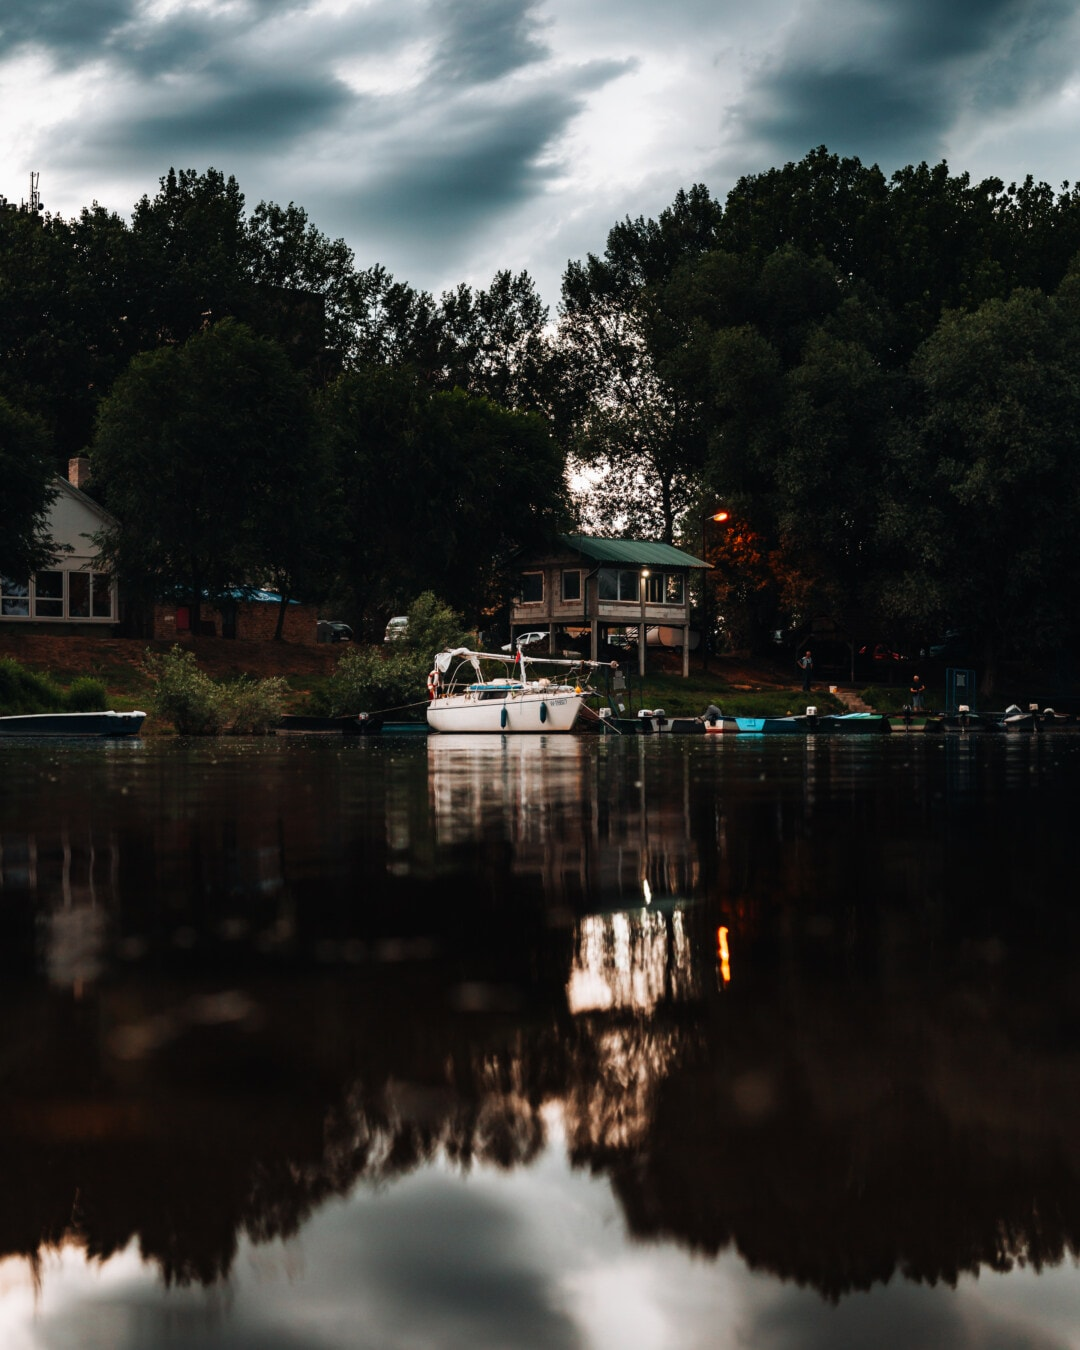 evening, dusk, lake, resort area, harbour, water, building, boathouse, reflection, tree